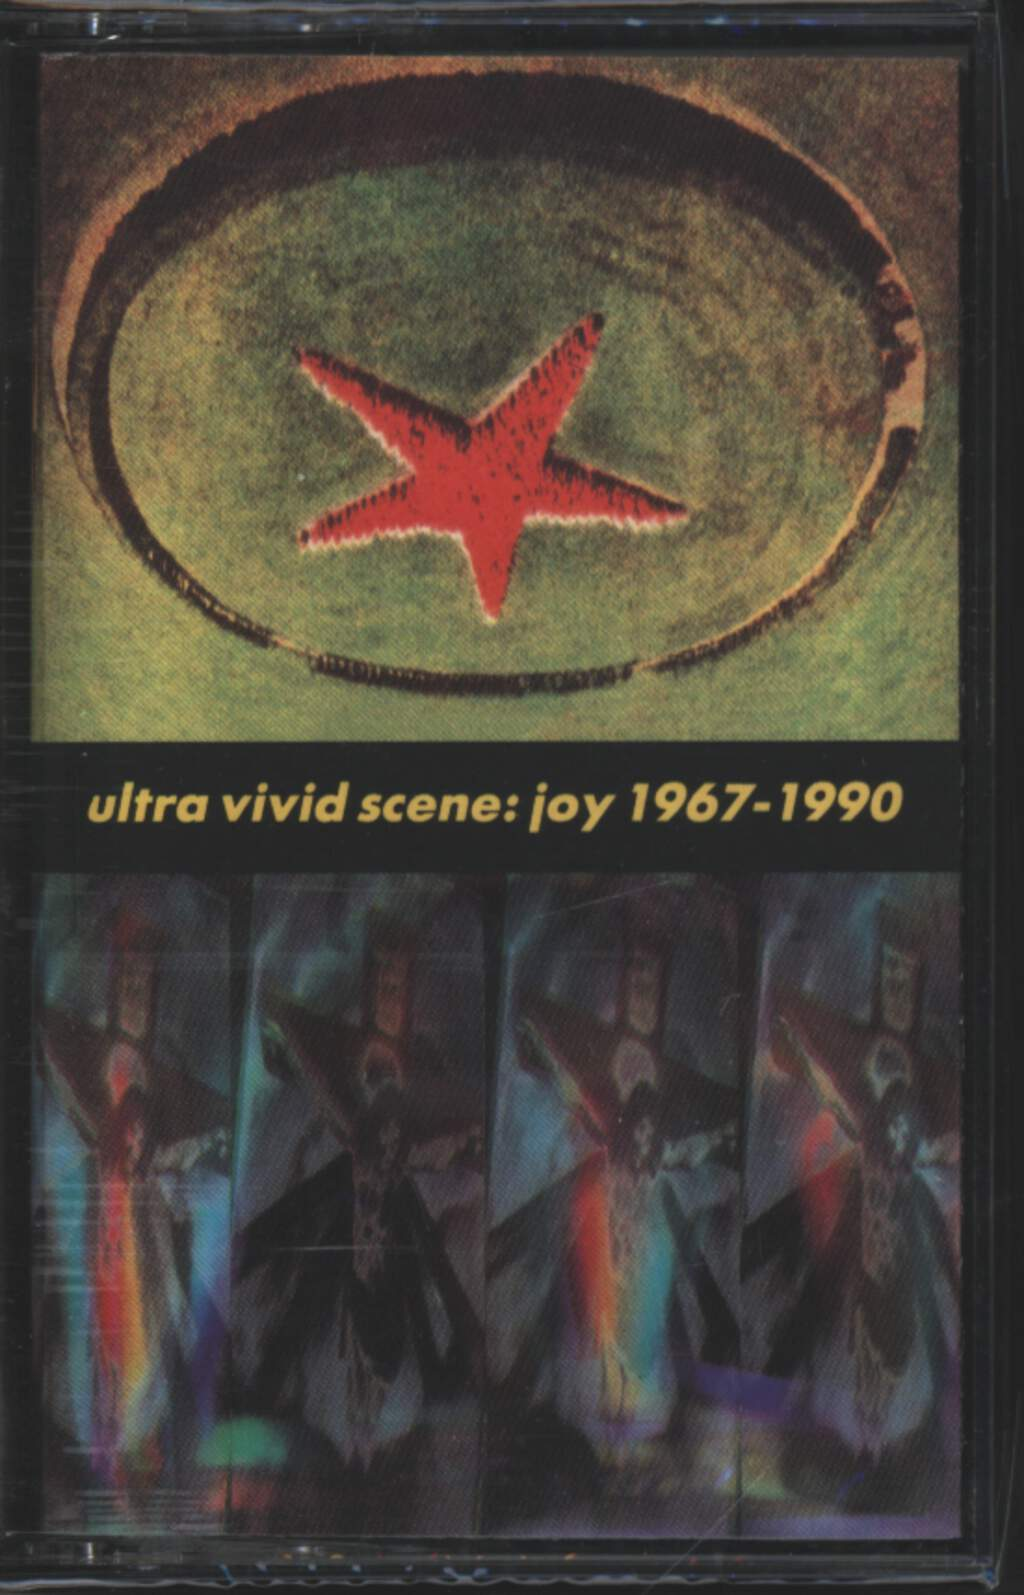 Ultra Vivid Scene: Joy 1967-1990, Tape